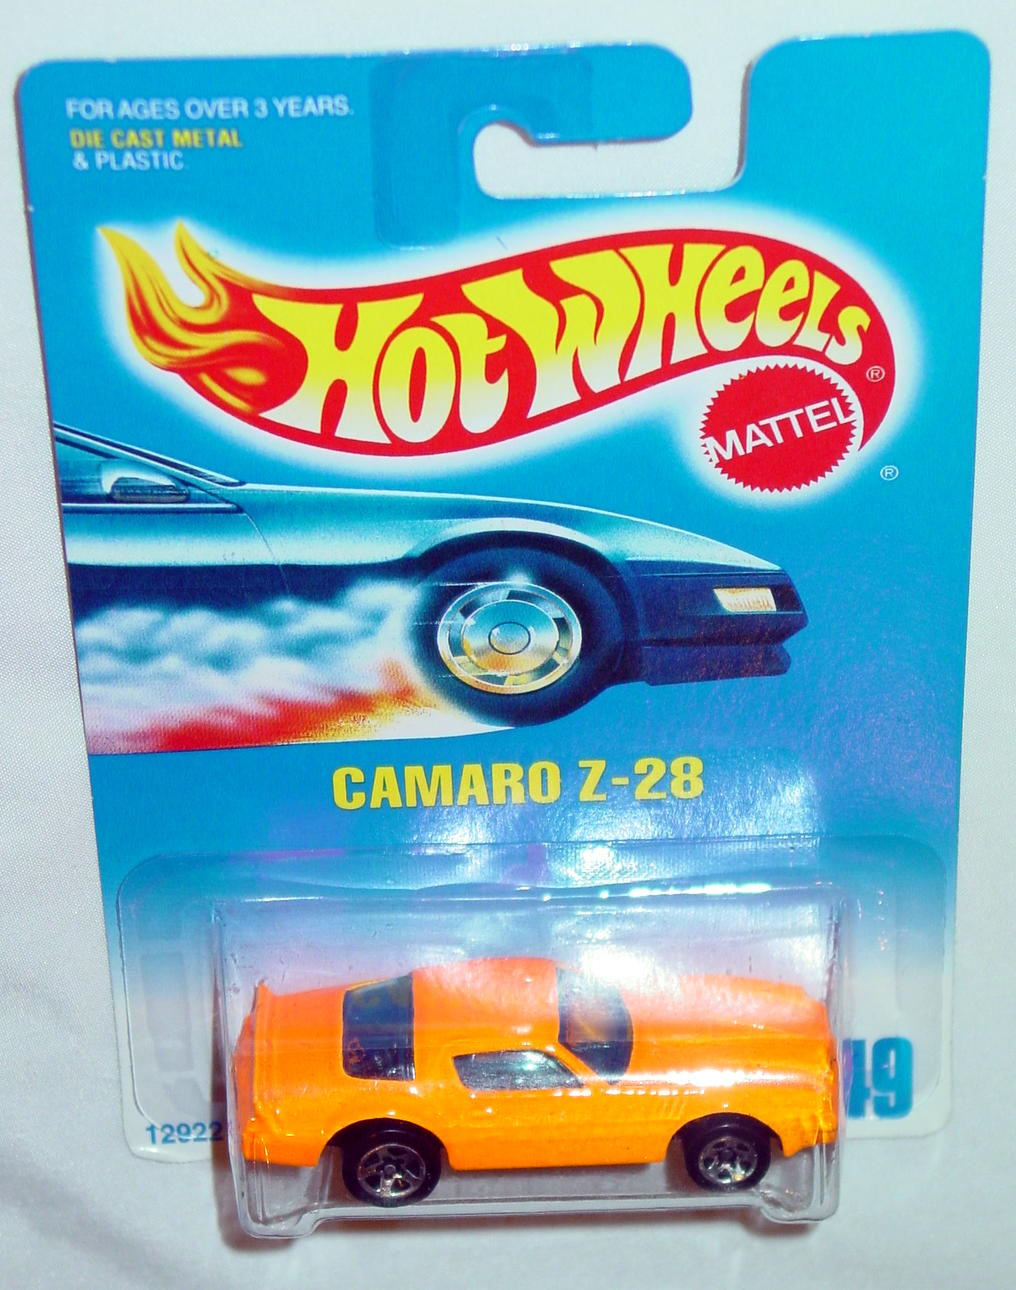 Blackwalls 12922 - 449 Camaro Z-28 Orange SP5